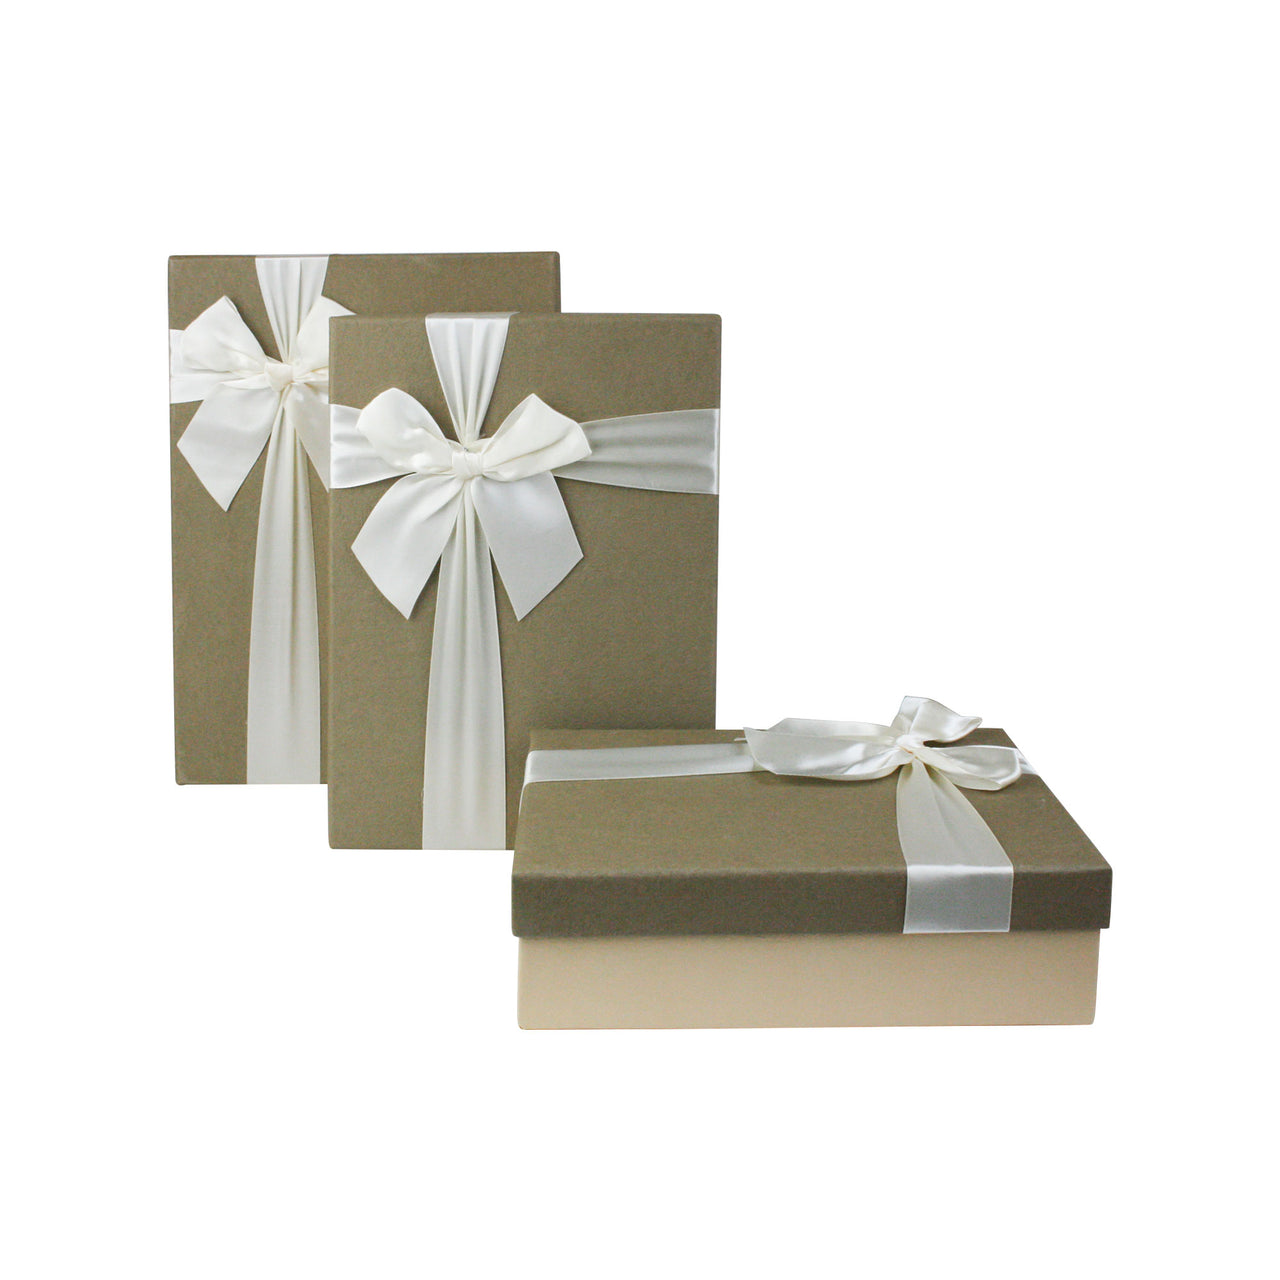 Cream Khaki with Bow Gift Box - Set Of 3